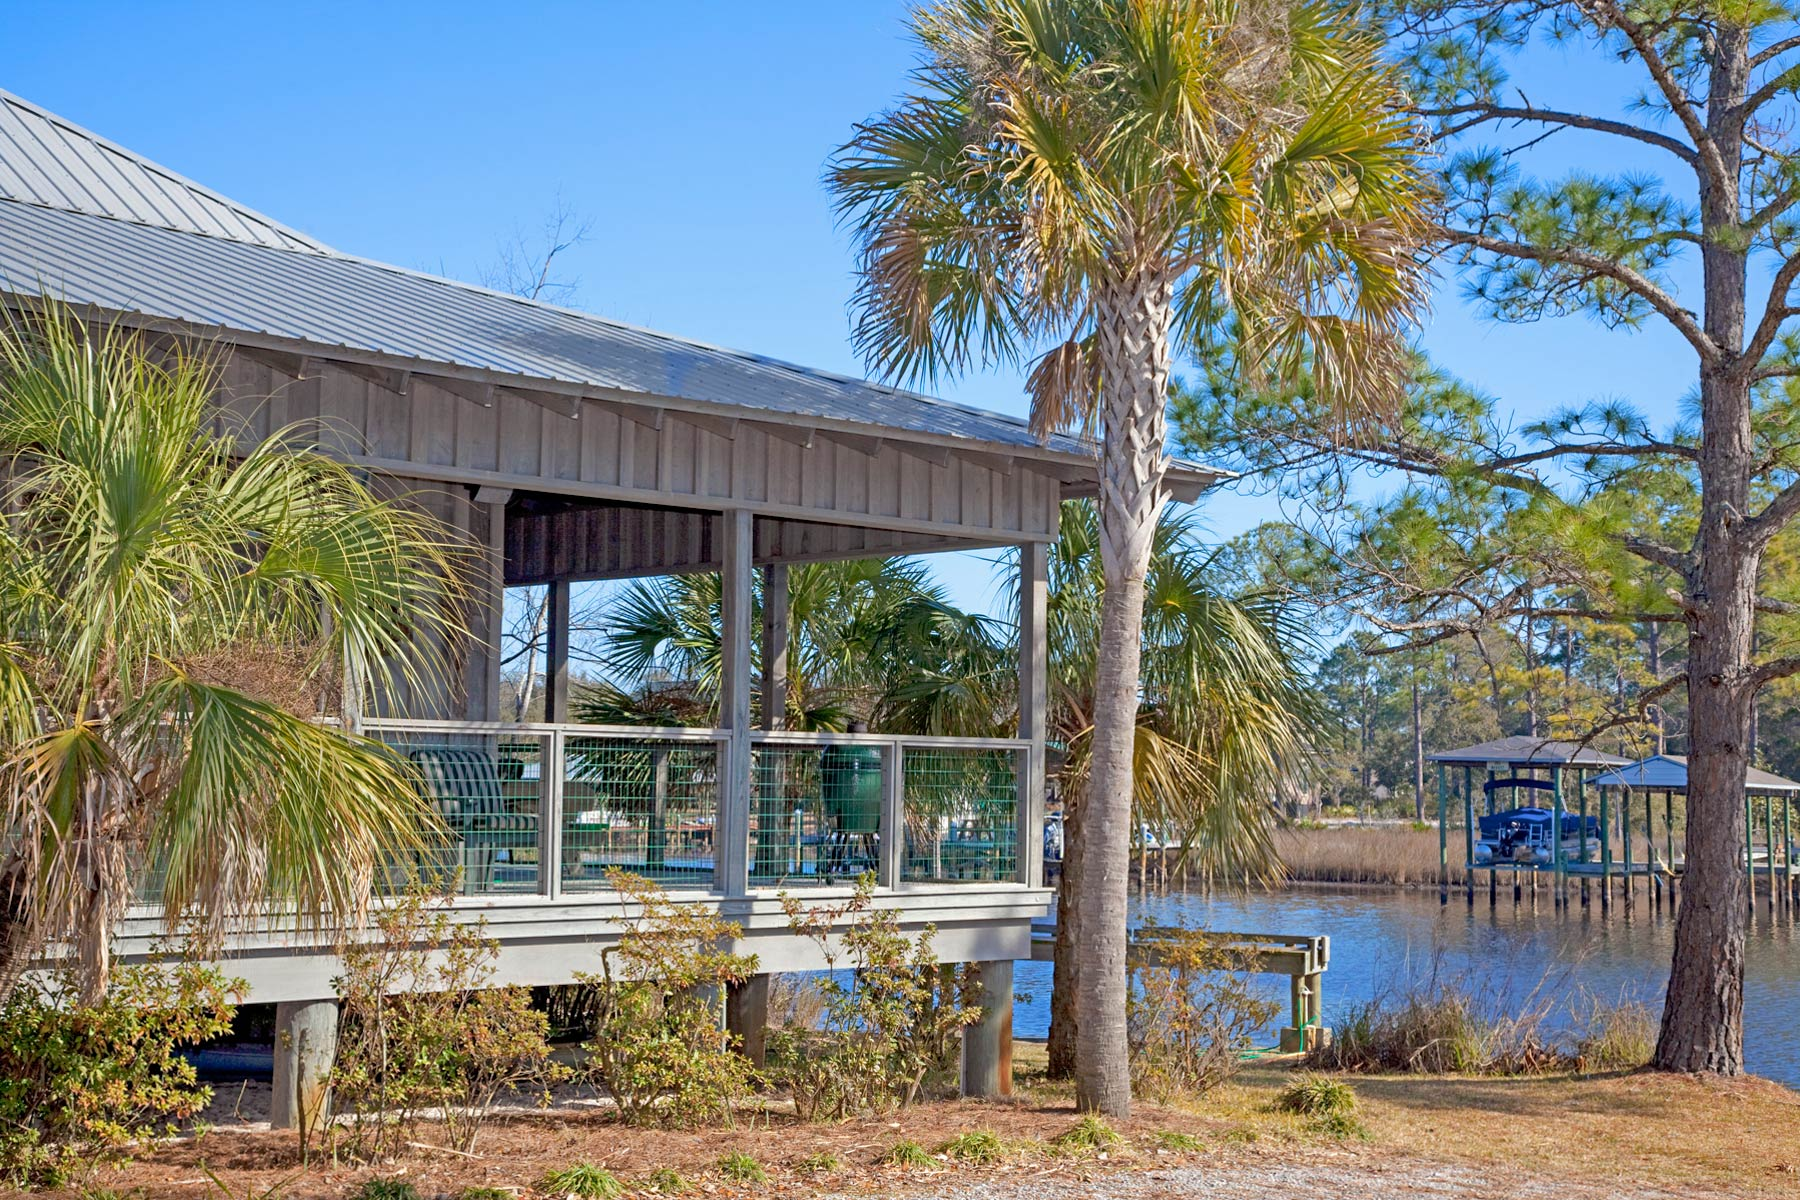 Balcony of Fishing style cottage with wrap around cover porch on Florida bayou.